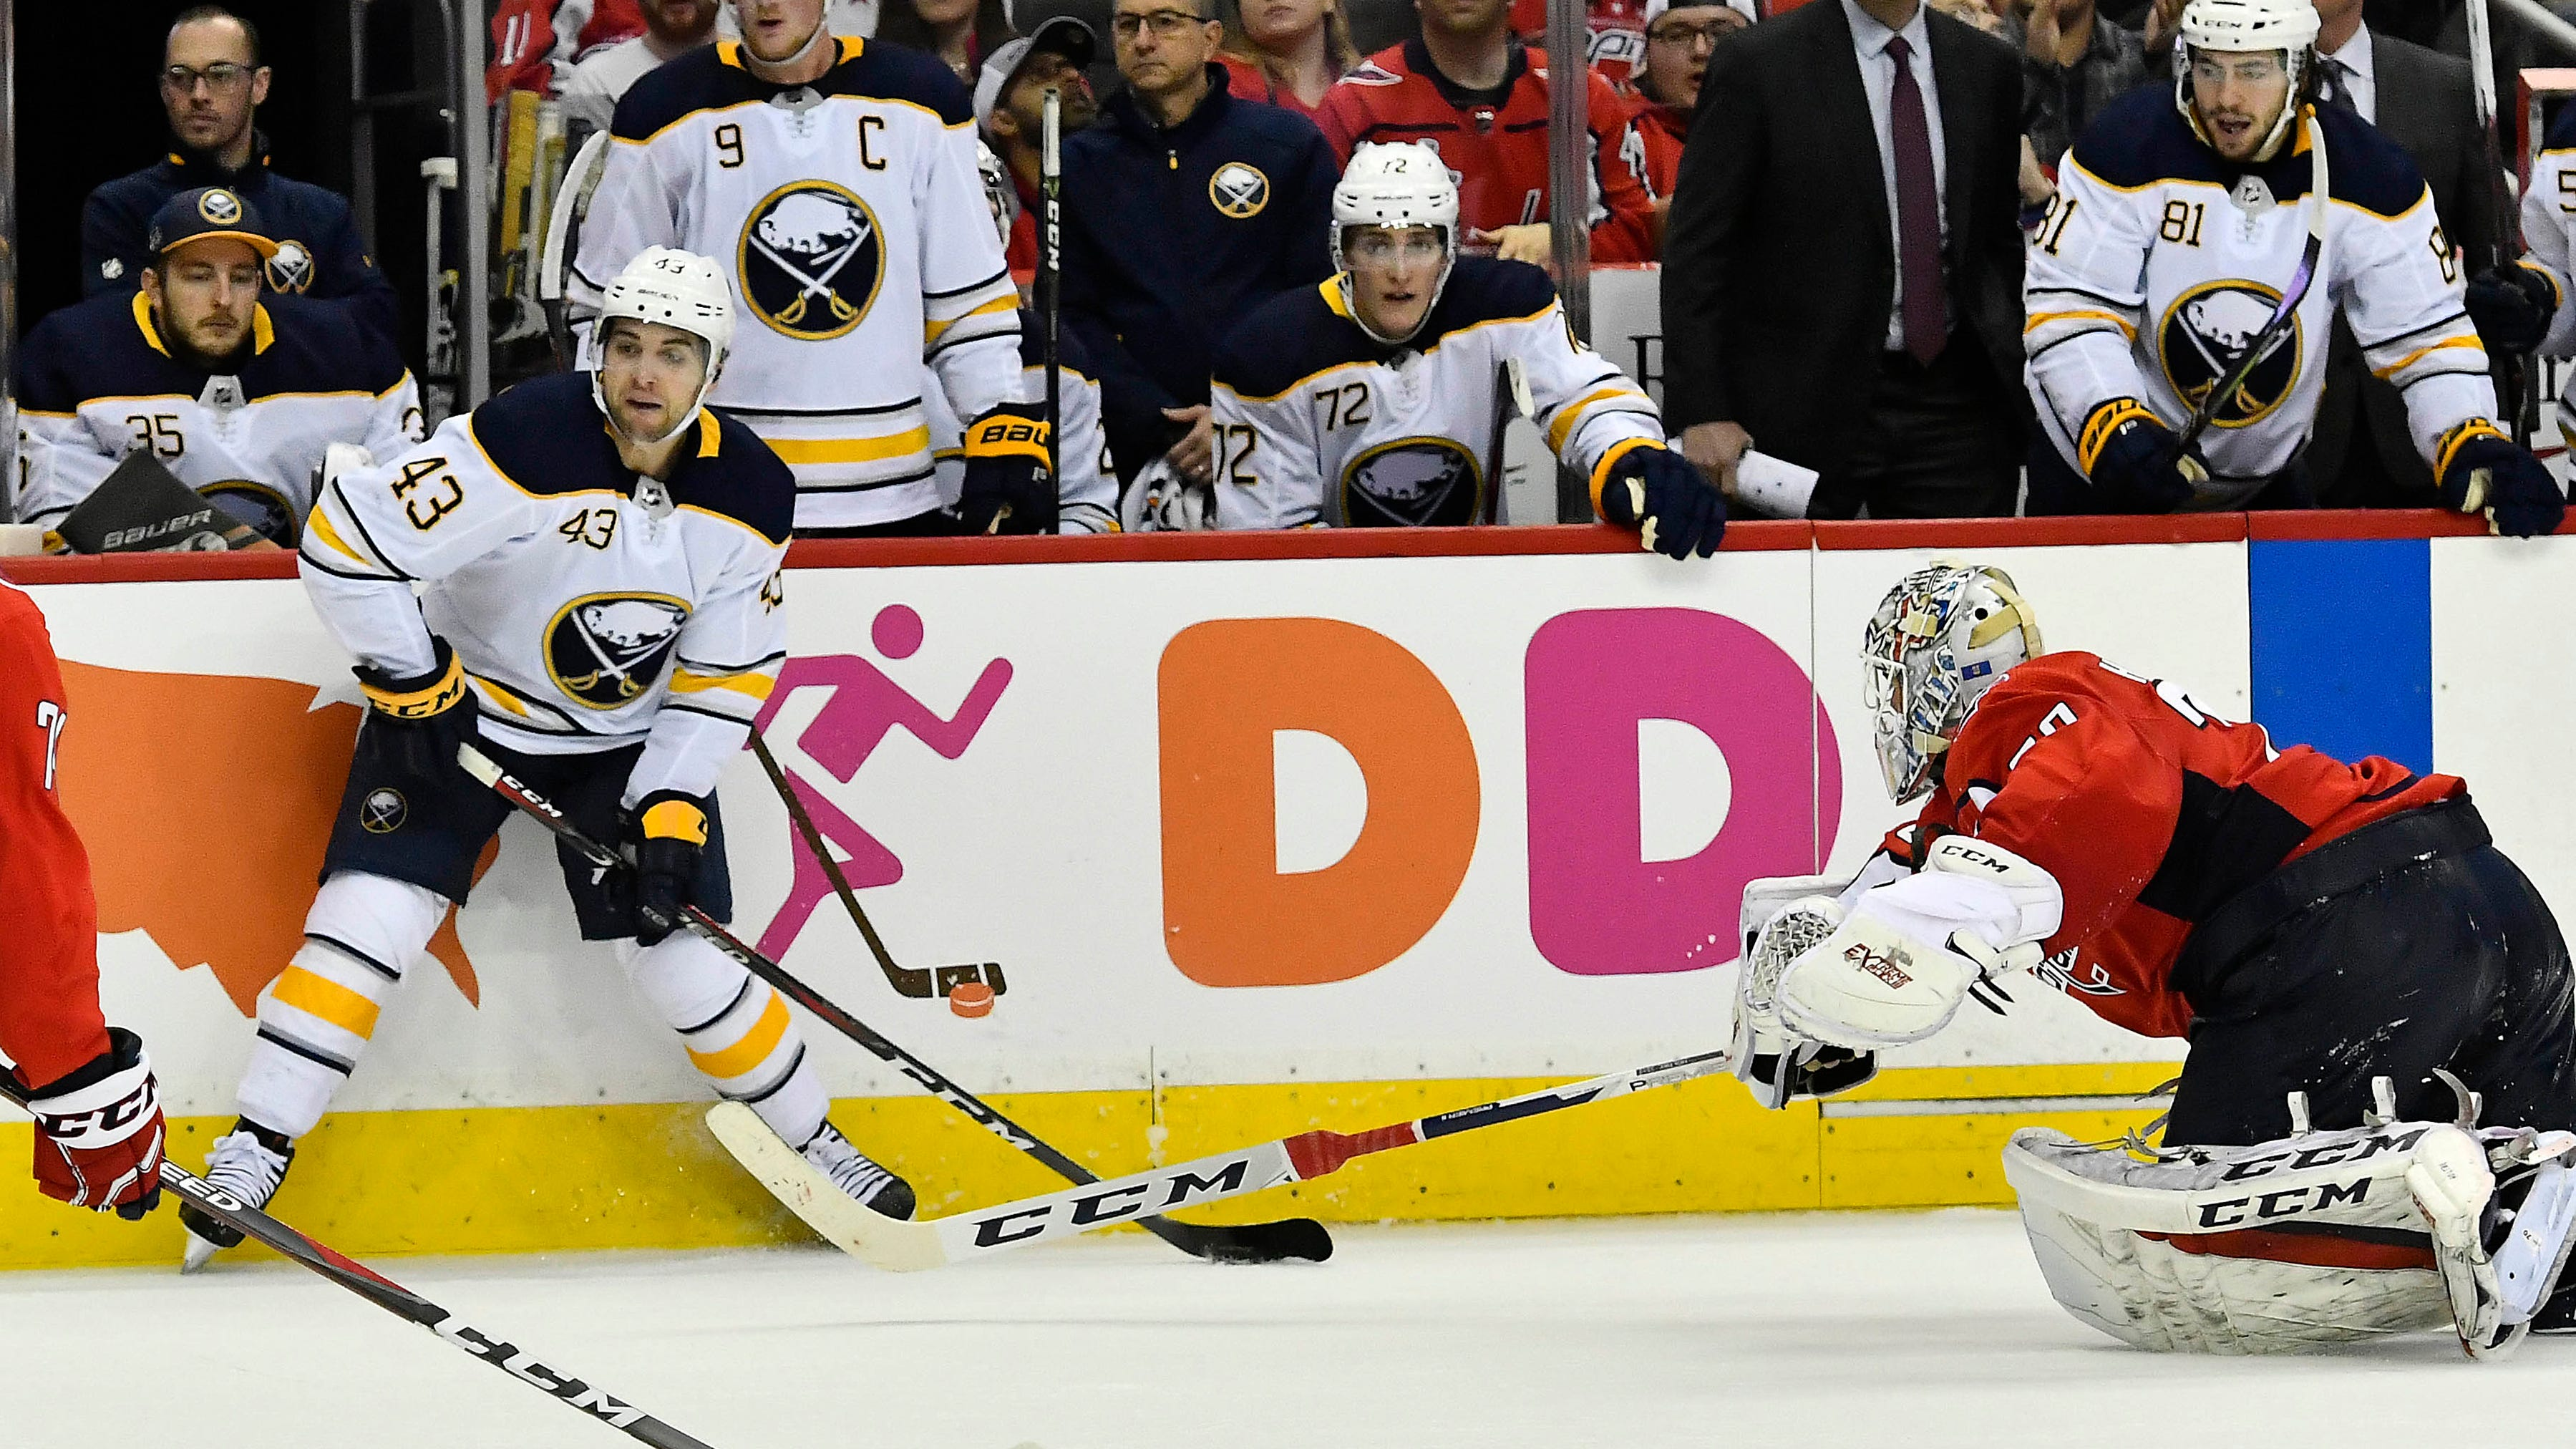 Cd62af93-af4d-418f-a0f6-0523cadc2876-usp_nhl__buffalo_sabres_at_washington_capitals